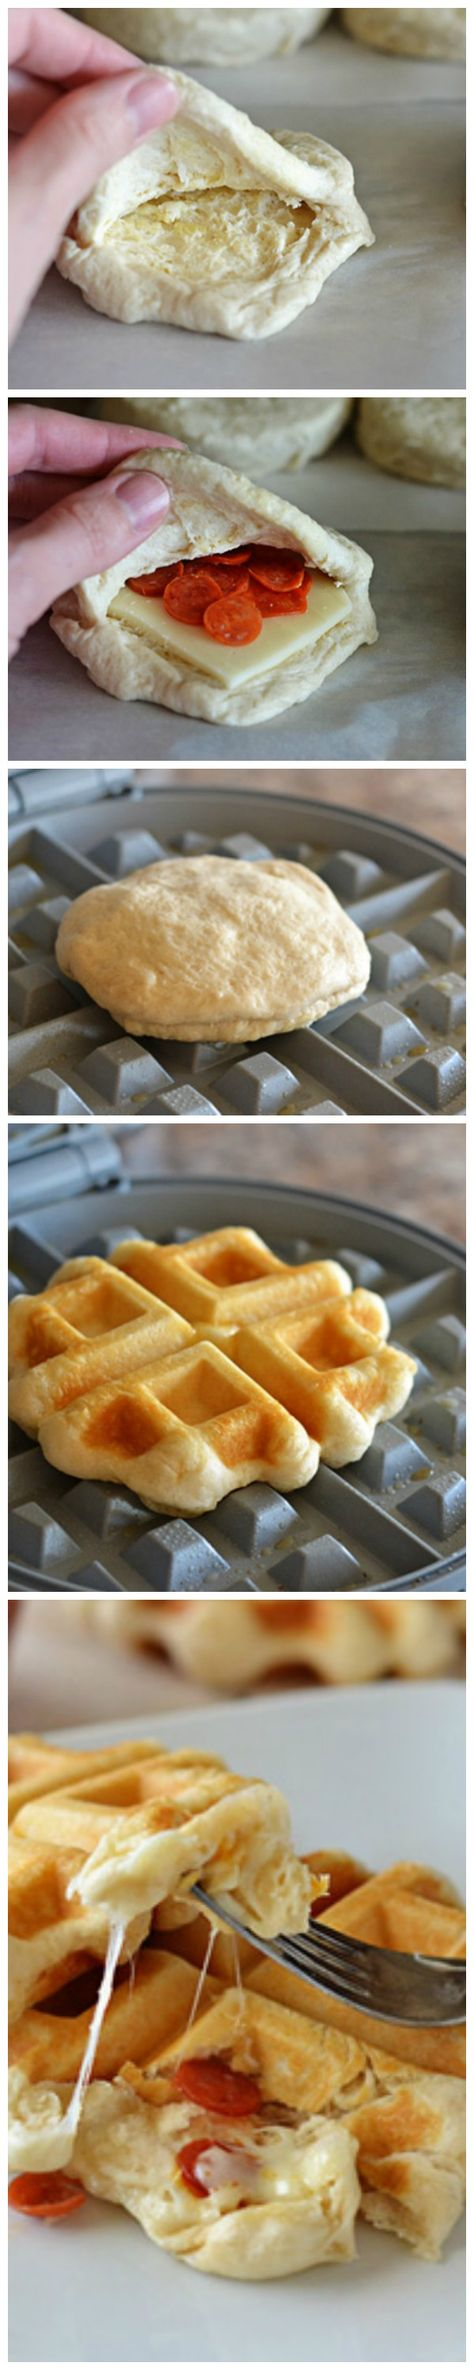 Pizza Waffles How-To ~ Pillsbury® Grand® Flaky Layers Biscuits are transformed into pizza waffles! Mini golden waffles stuffed with melty cheese and pepperoni. These will be a hit with everyone! Only 4 ingredients!